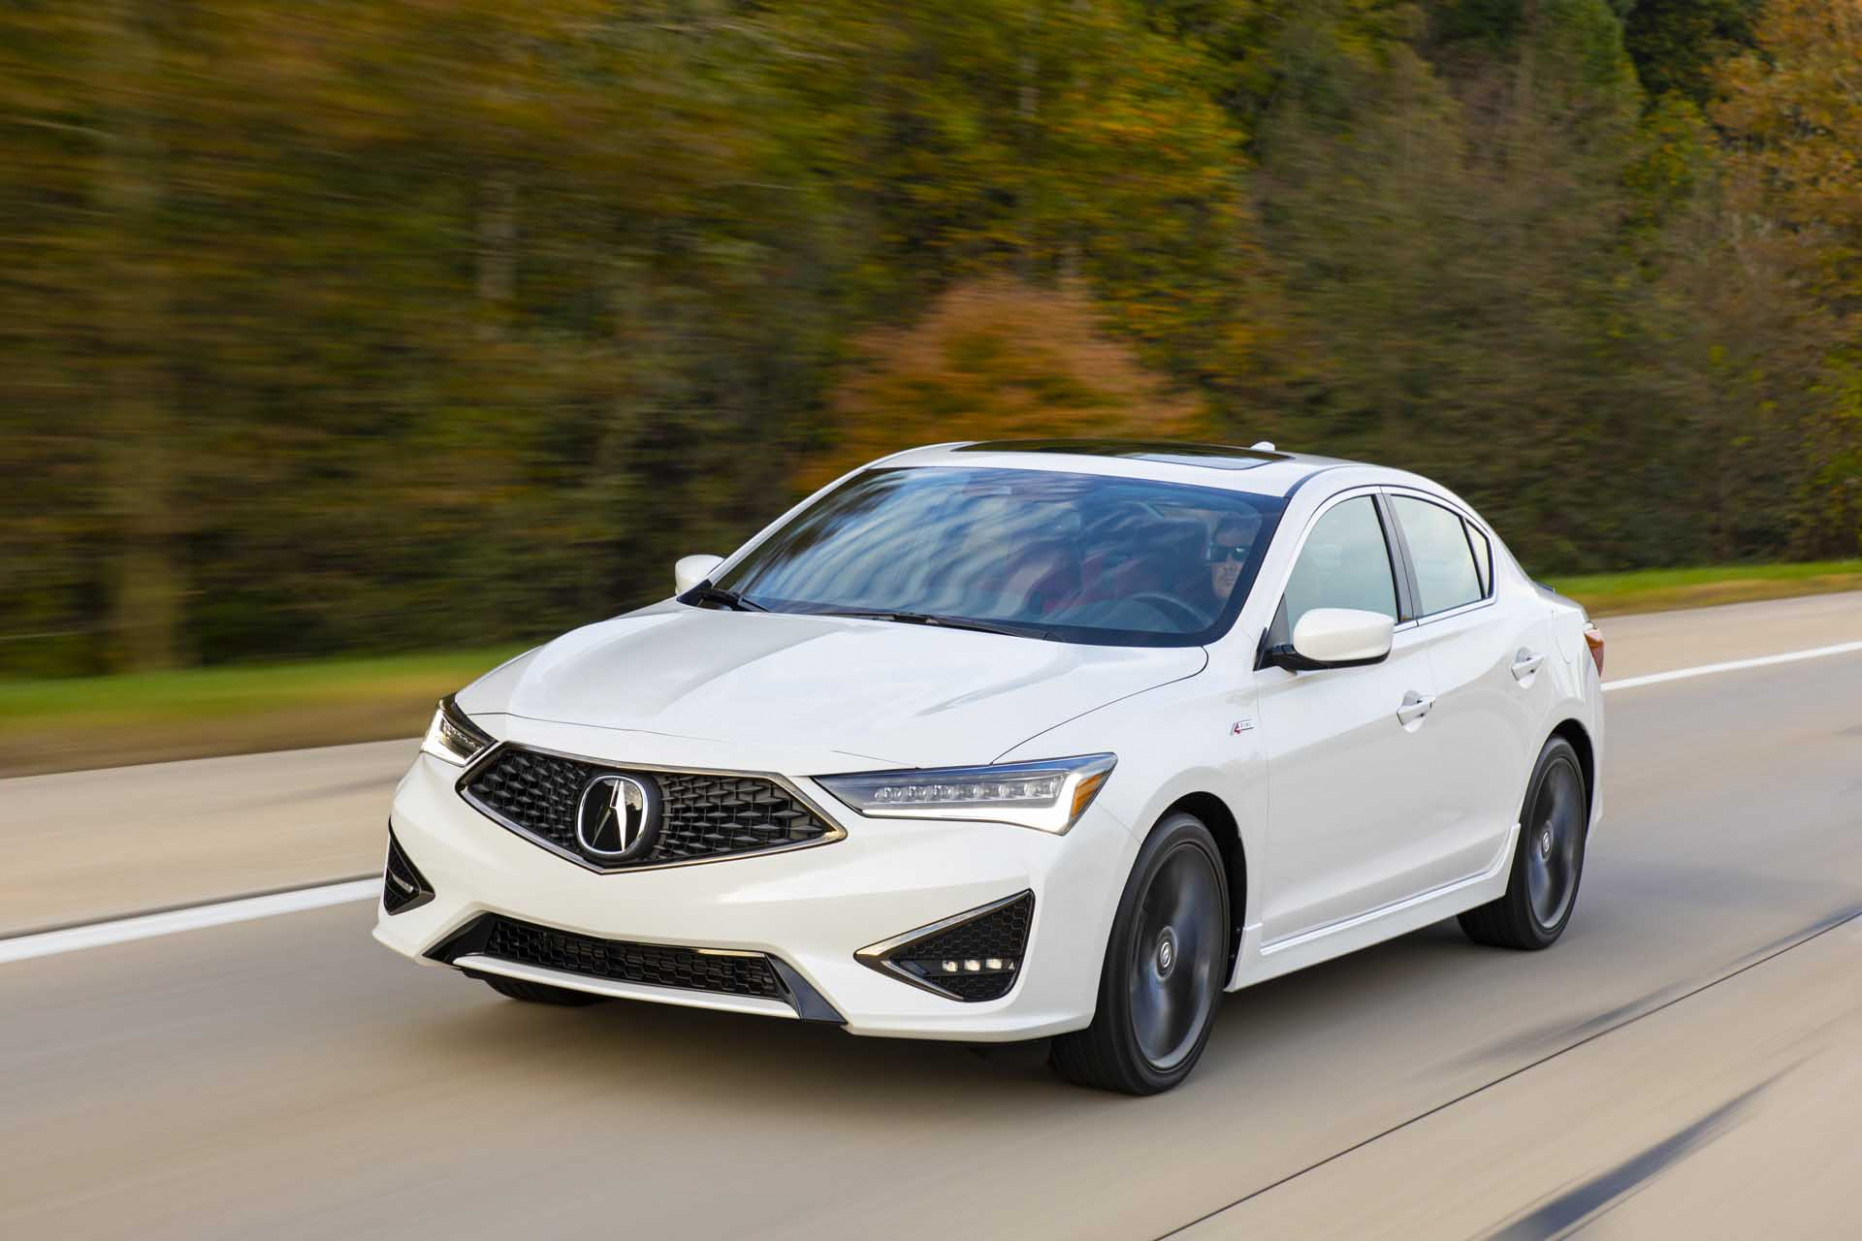 6 Acura ILX Review, Ratings, Specs, Prices, and Photos - The ..